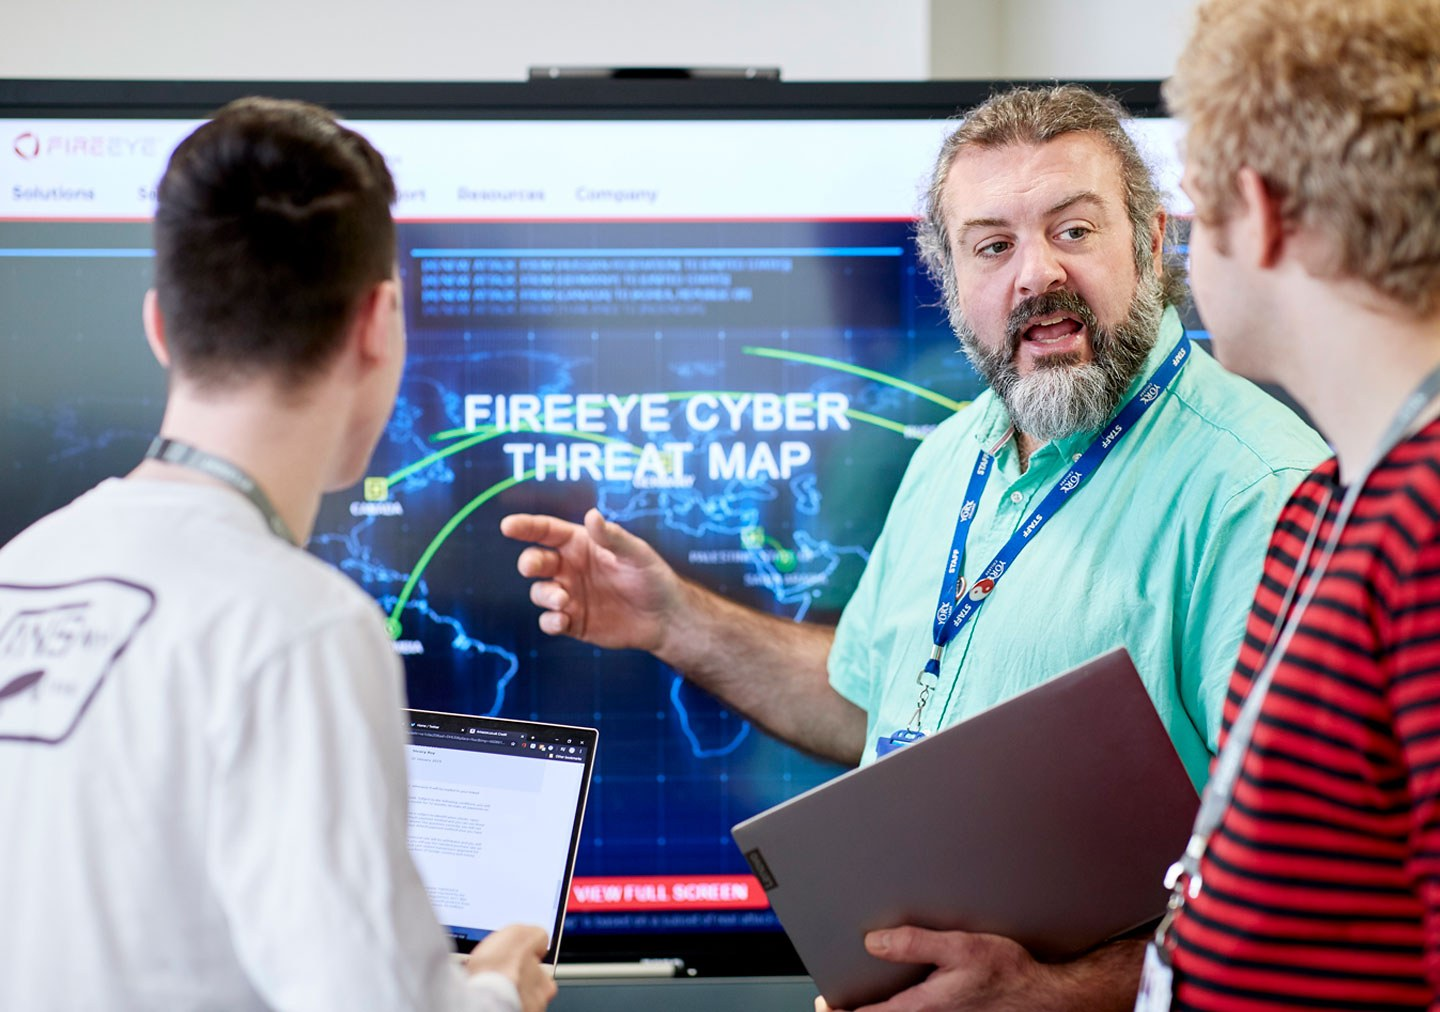 Cybersecurity students being taught by tutor